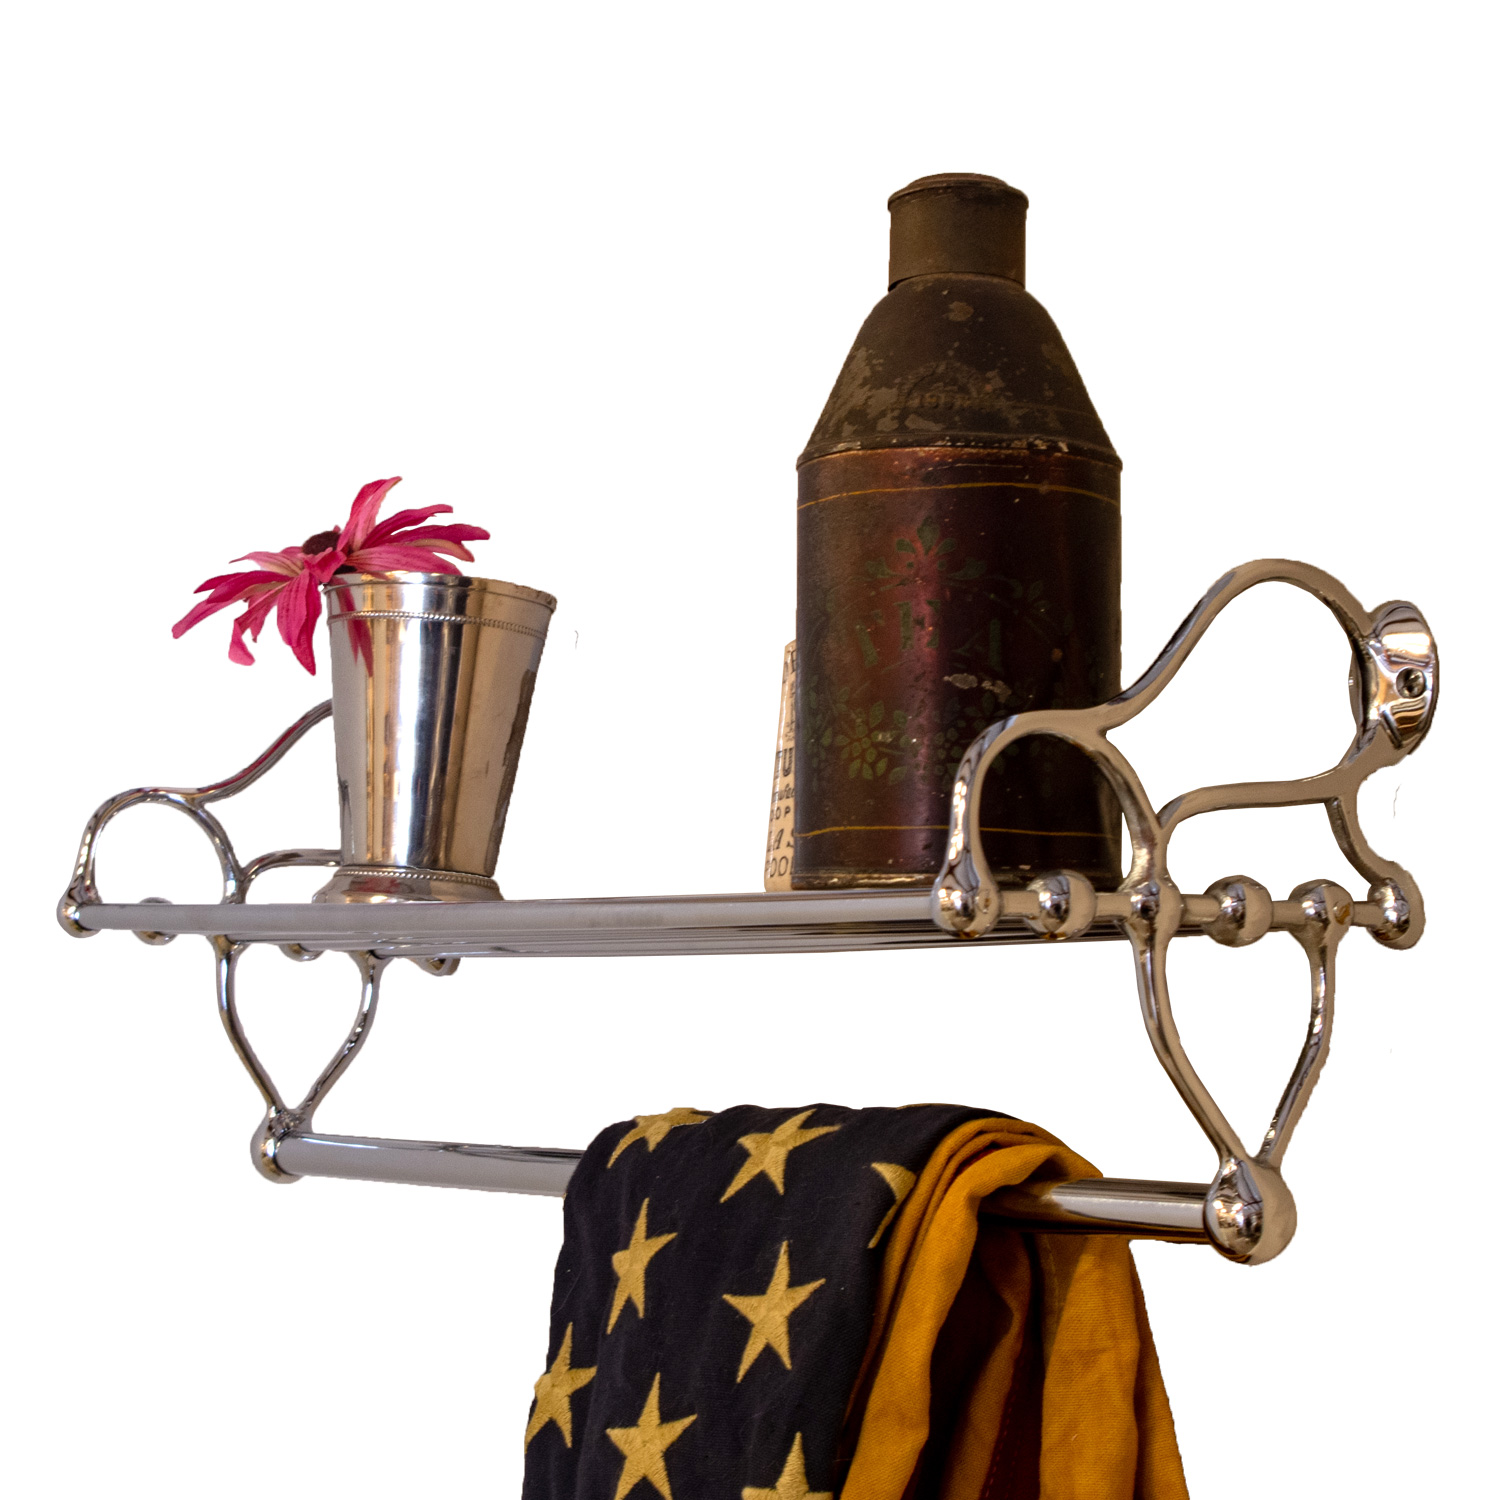 Reproduction Vintage Bath Towels: Chrome Rack For Bathroom With Towel Rail And Shelf Antique